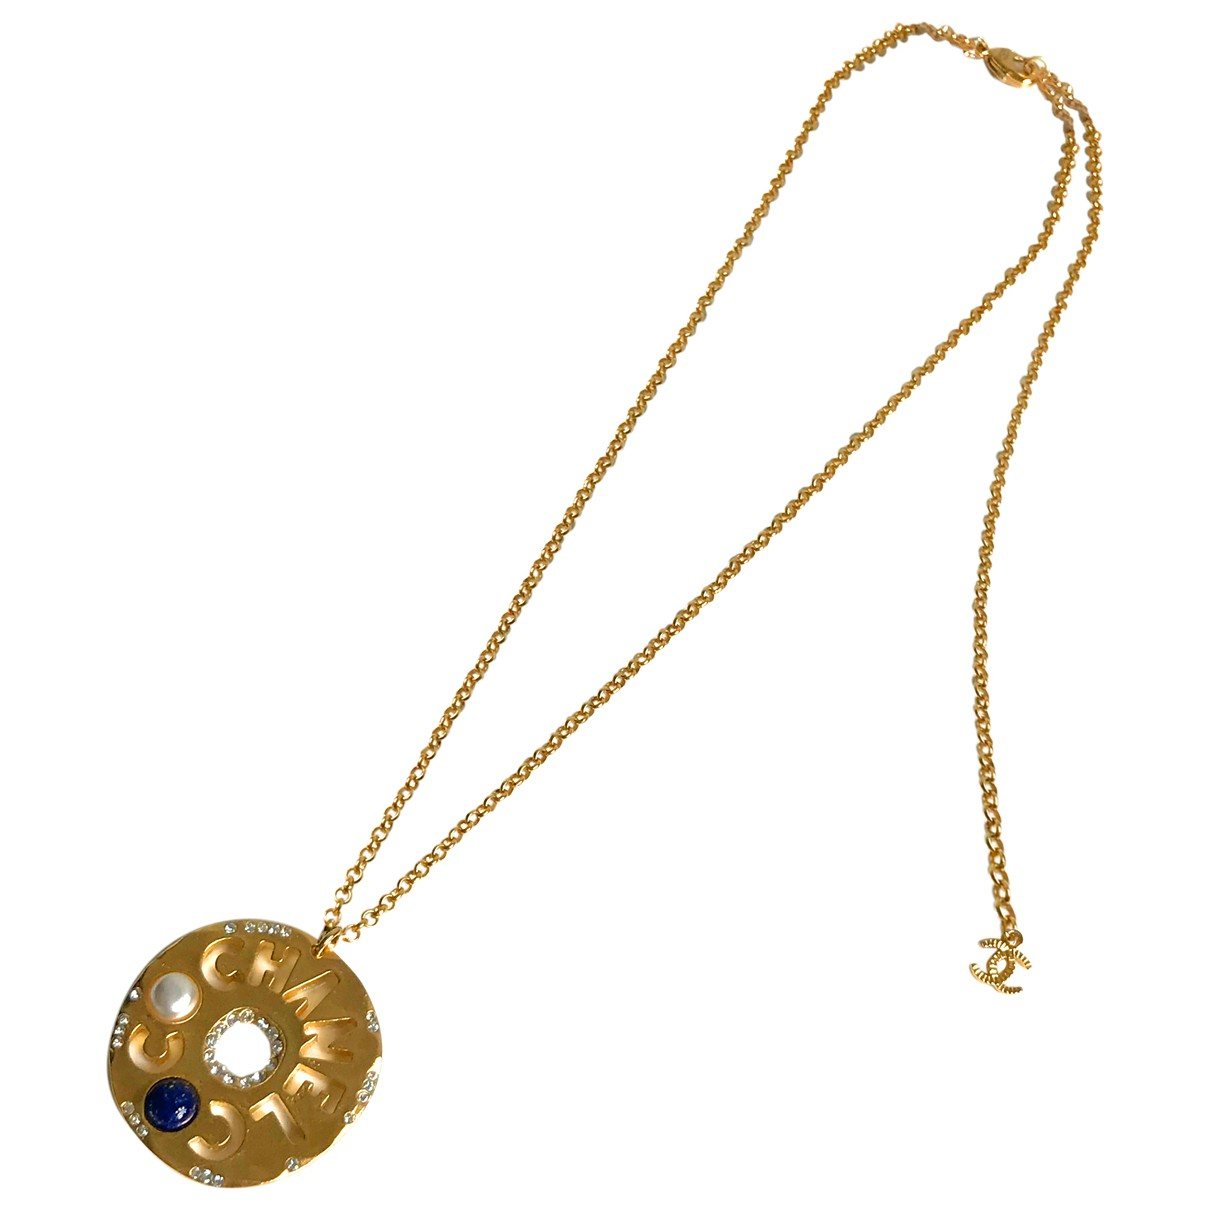 Chanel CHANEL Kette in  Gold Metall